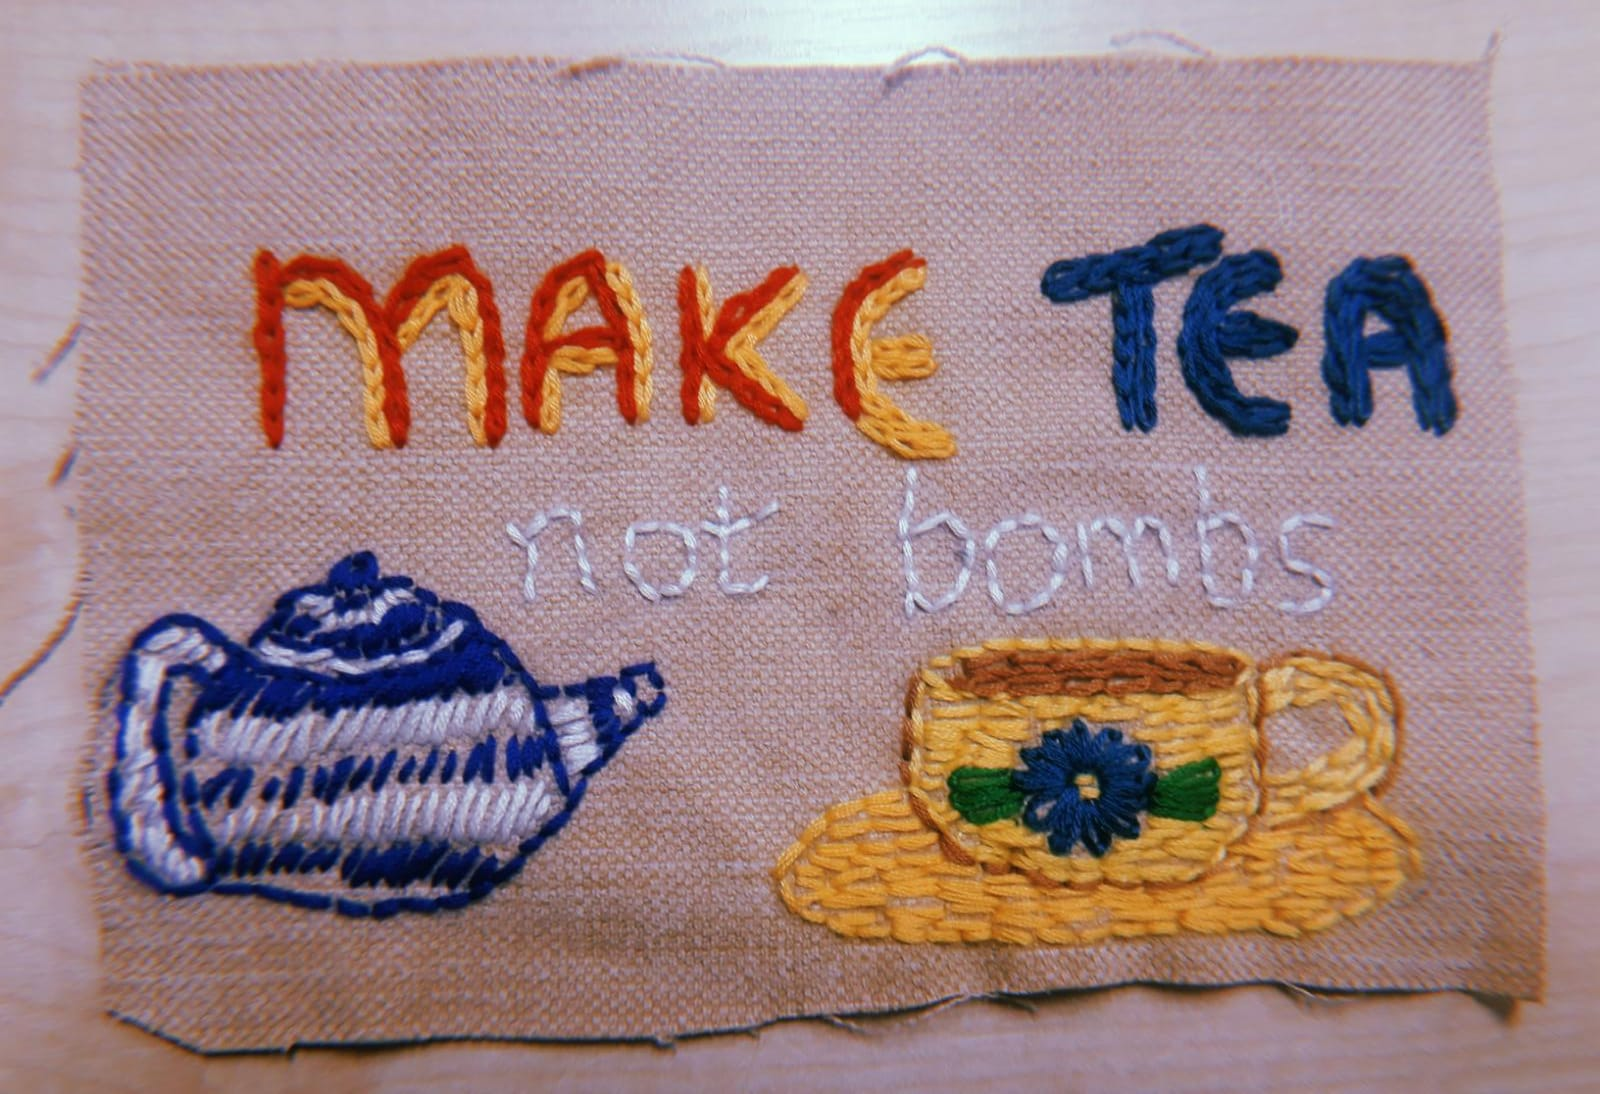 teapot stitches say make tea not bombs